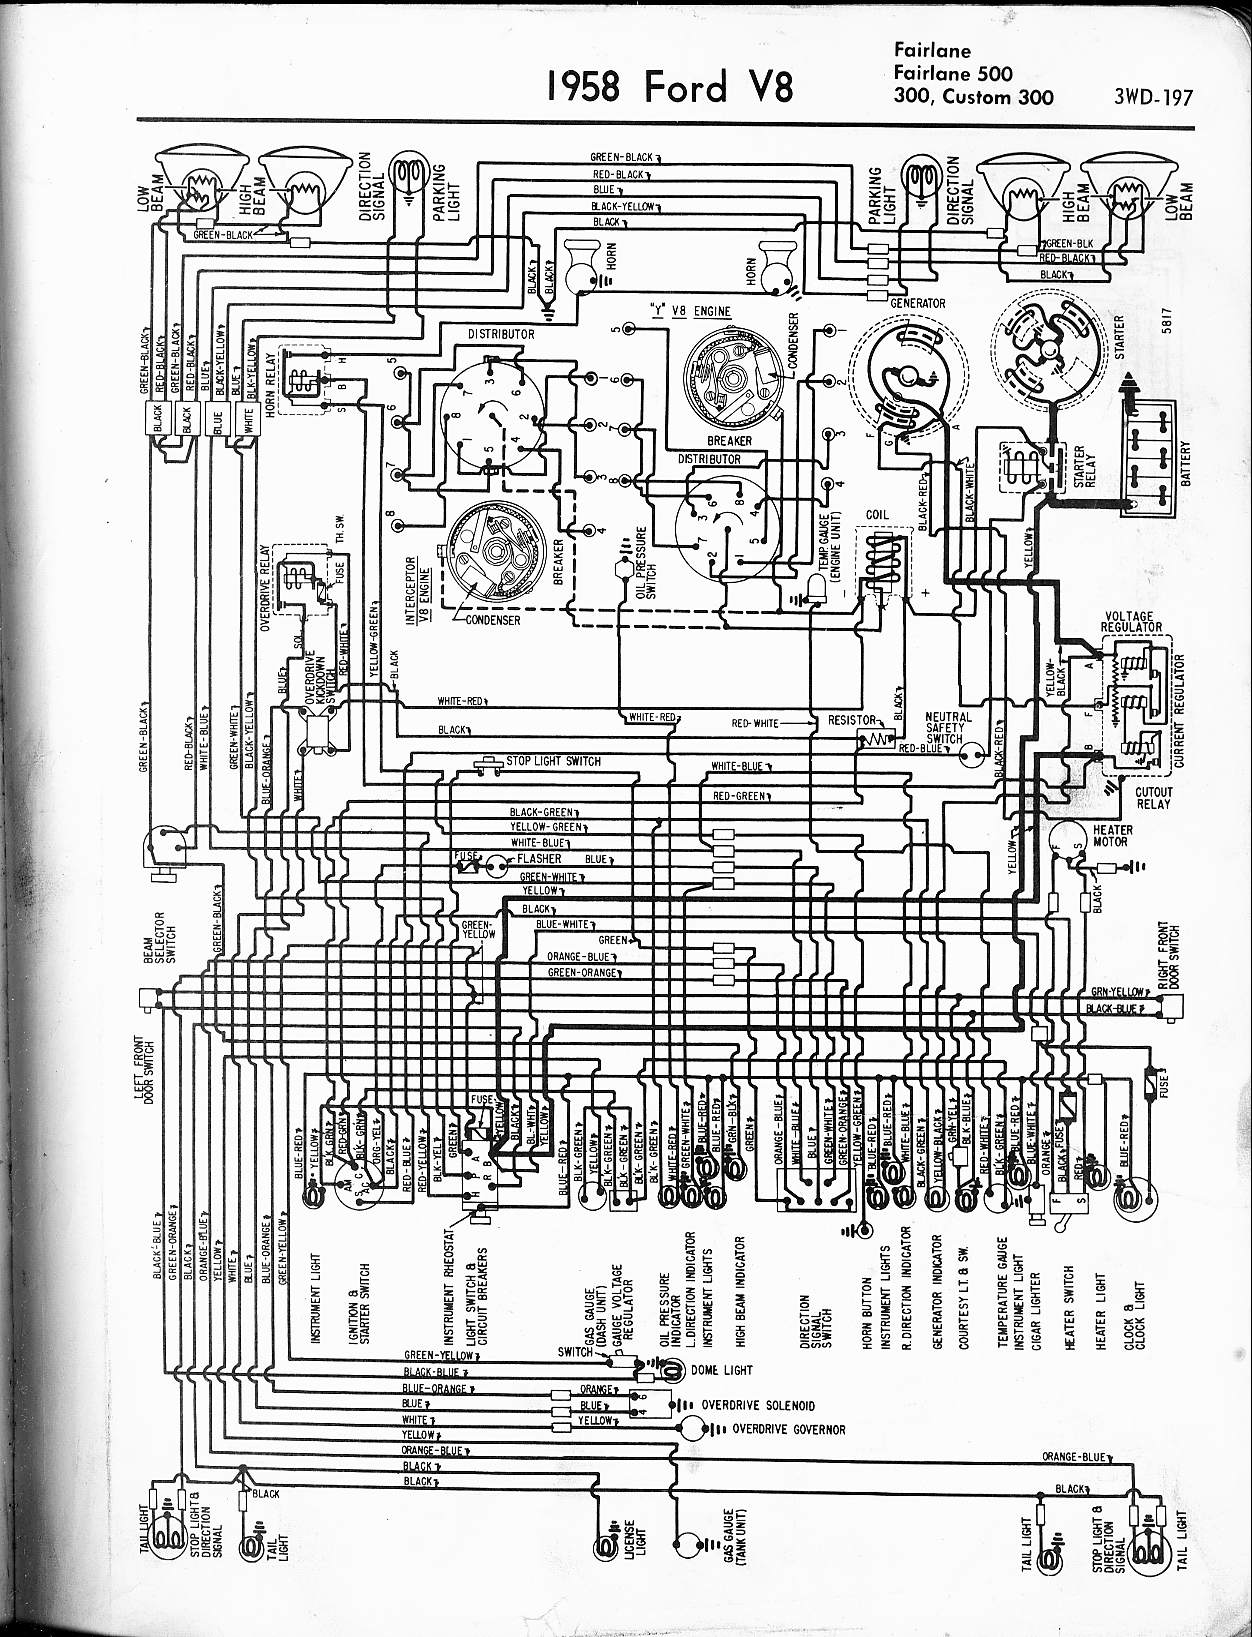 1970 Ford Truck Wiring Diagrams | Wiring Diagram Jim F Wiring Diagram on